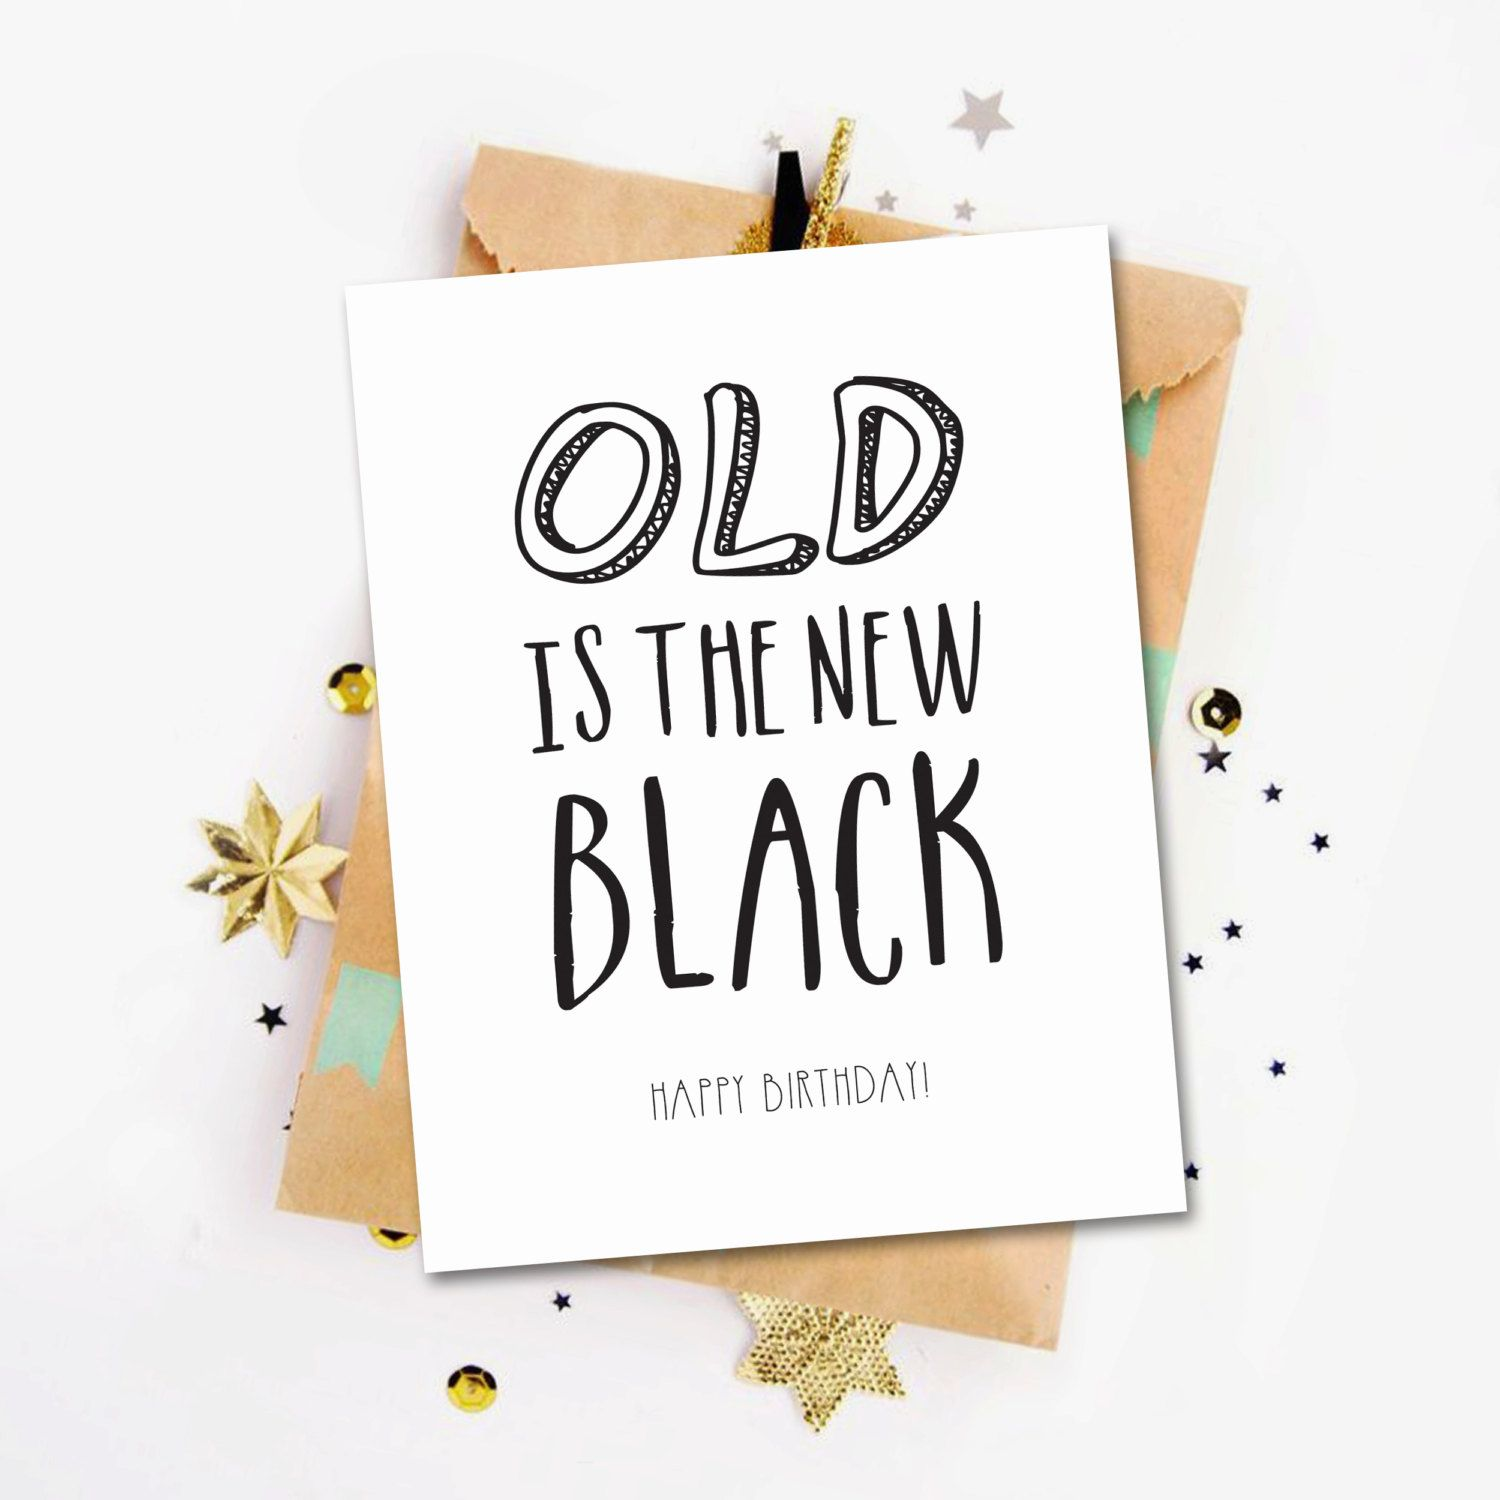 Funny Birthday Card. Old Is The New Black Greeting Card. A Funny Way To Wish Happy Birthday